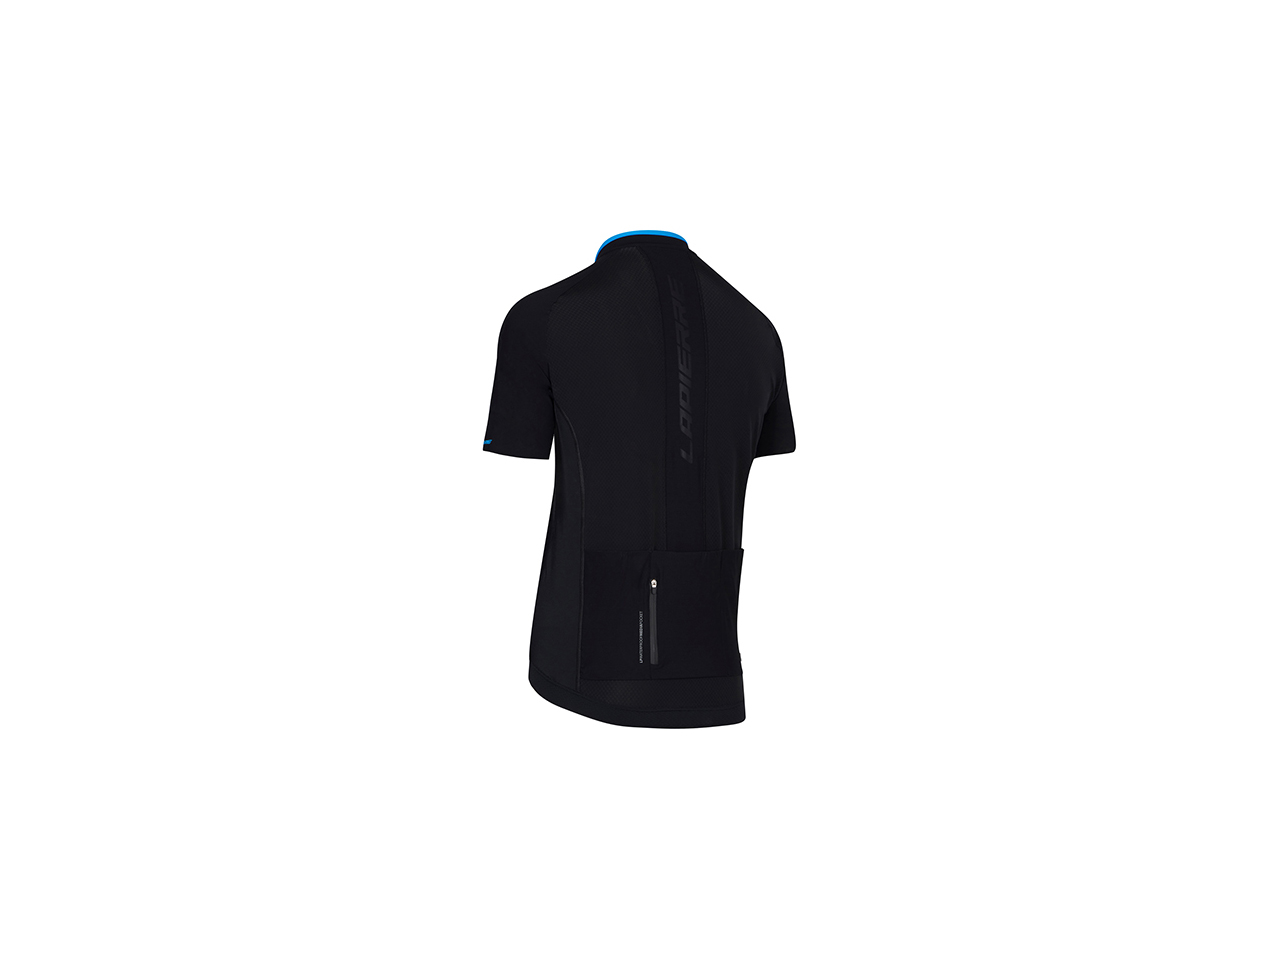 Lapierre Scuderia Azurra men's cycling jersey - back